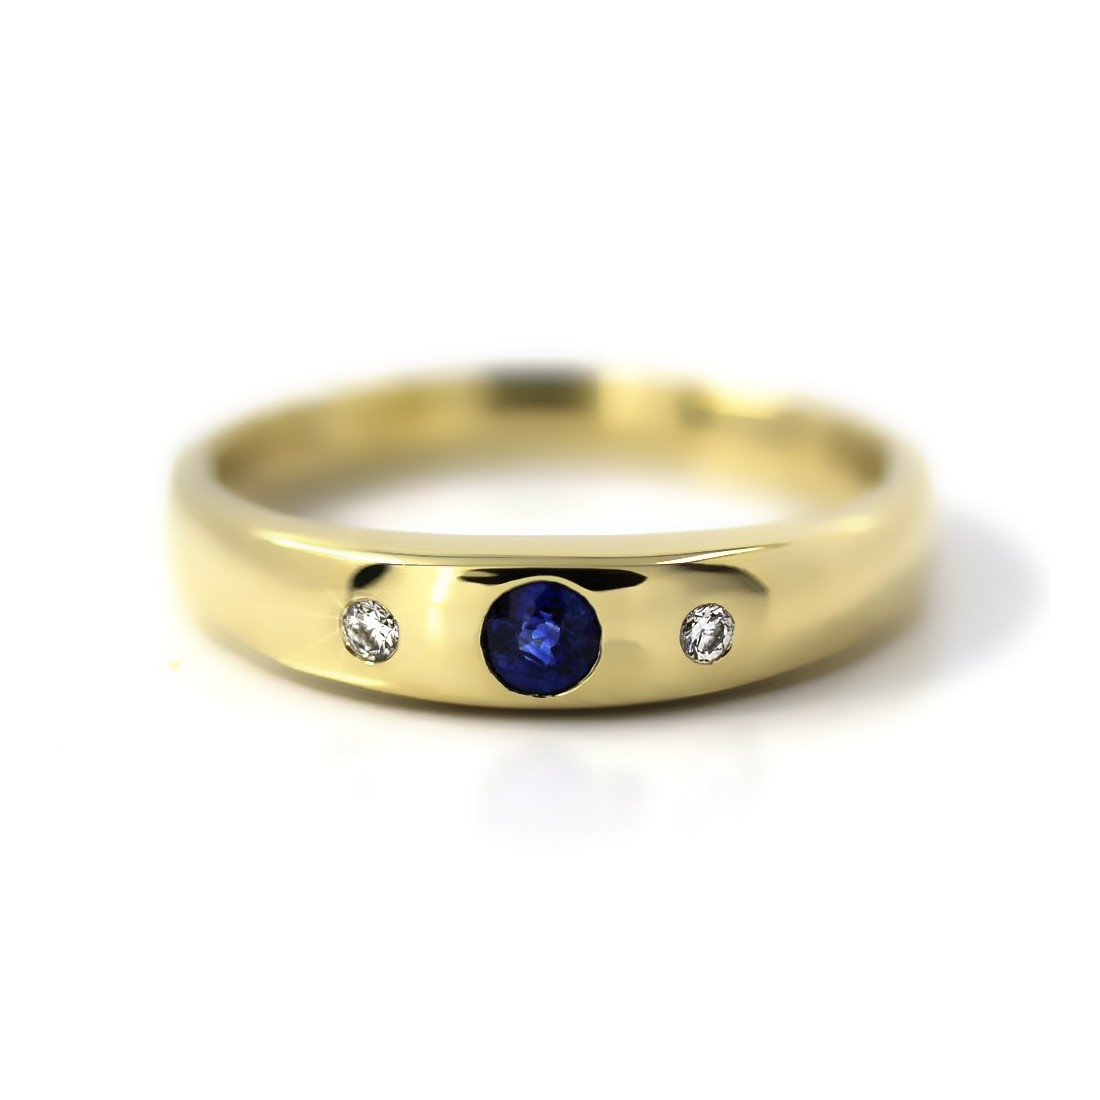 Bandring in Gold, 3 mm Saphir und 2 Brillanten